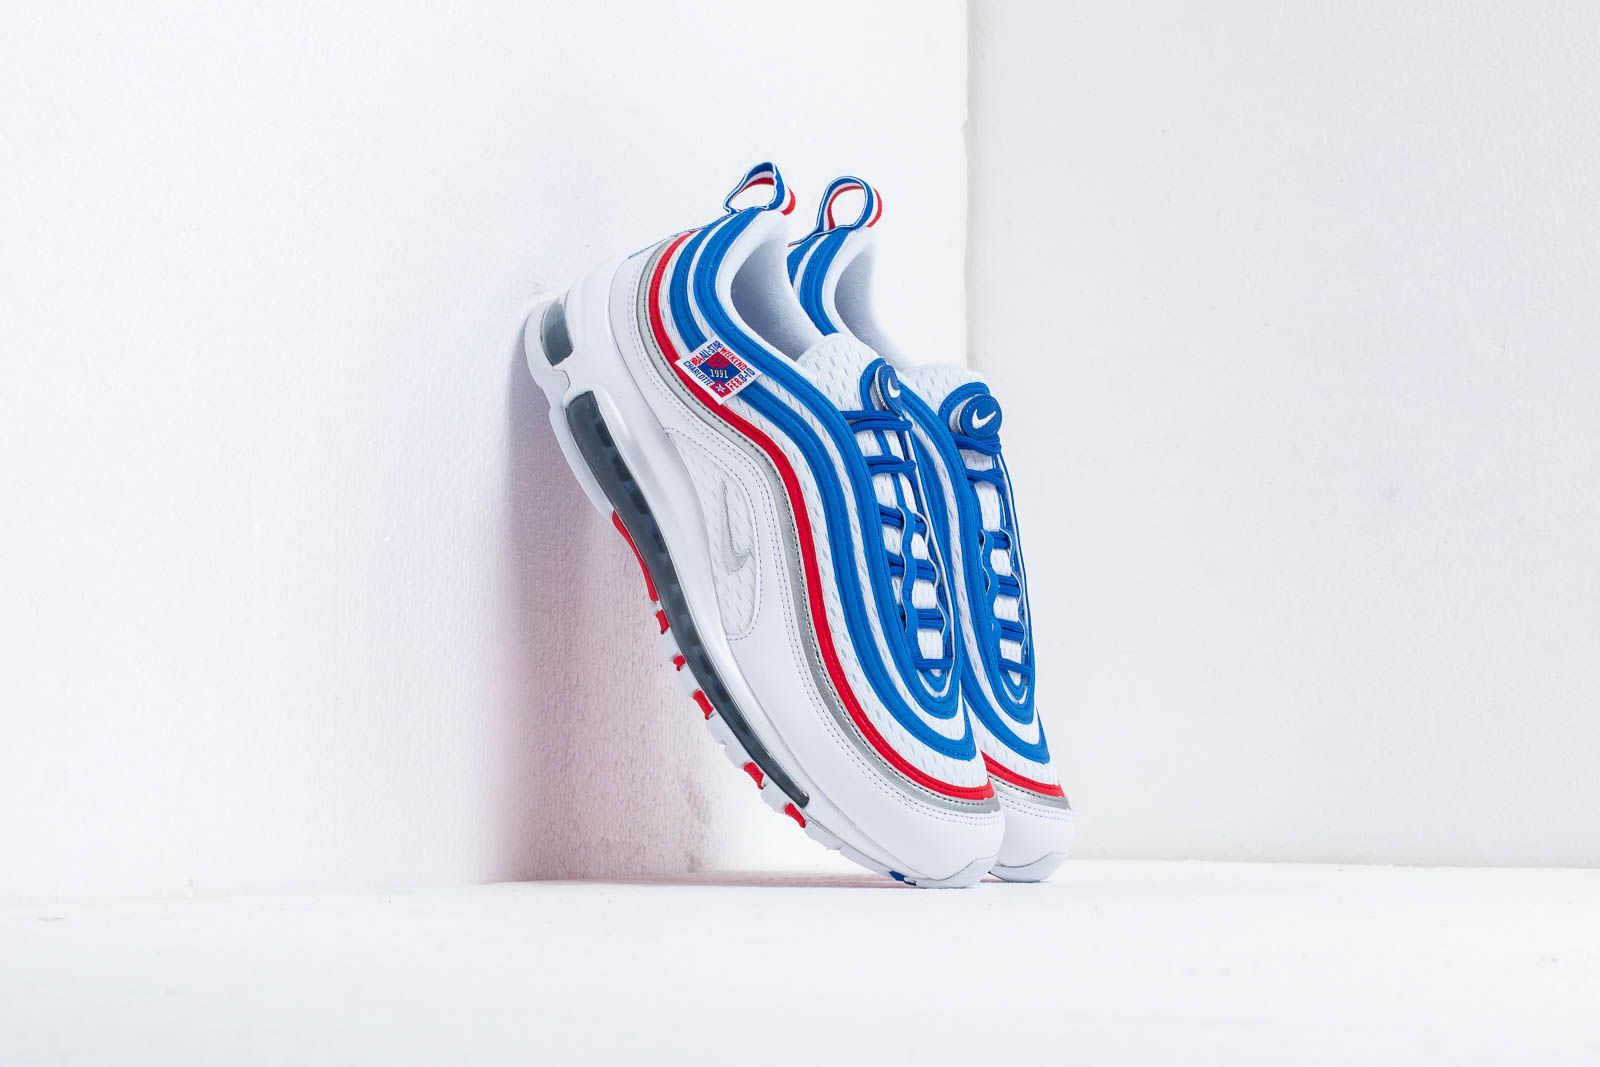 Nike Air Max 97 Game Royal/ Metallic Silver W super cenie 778 zł kupuj na Footshop.pl